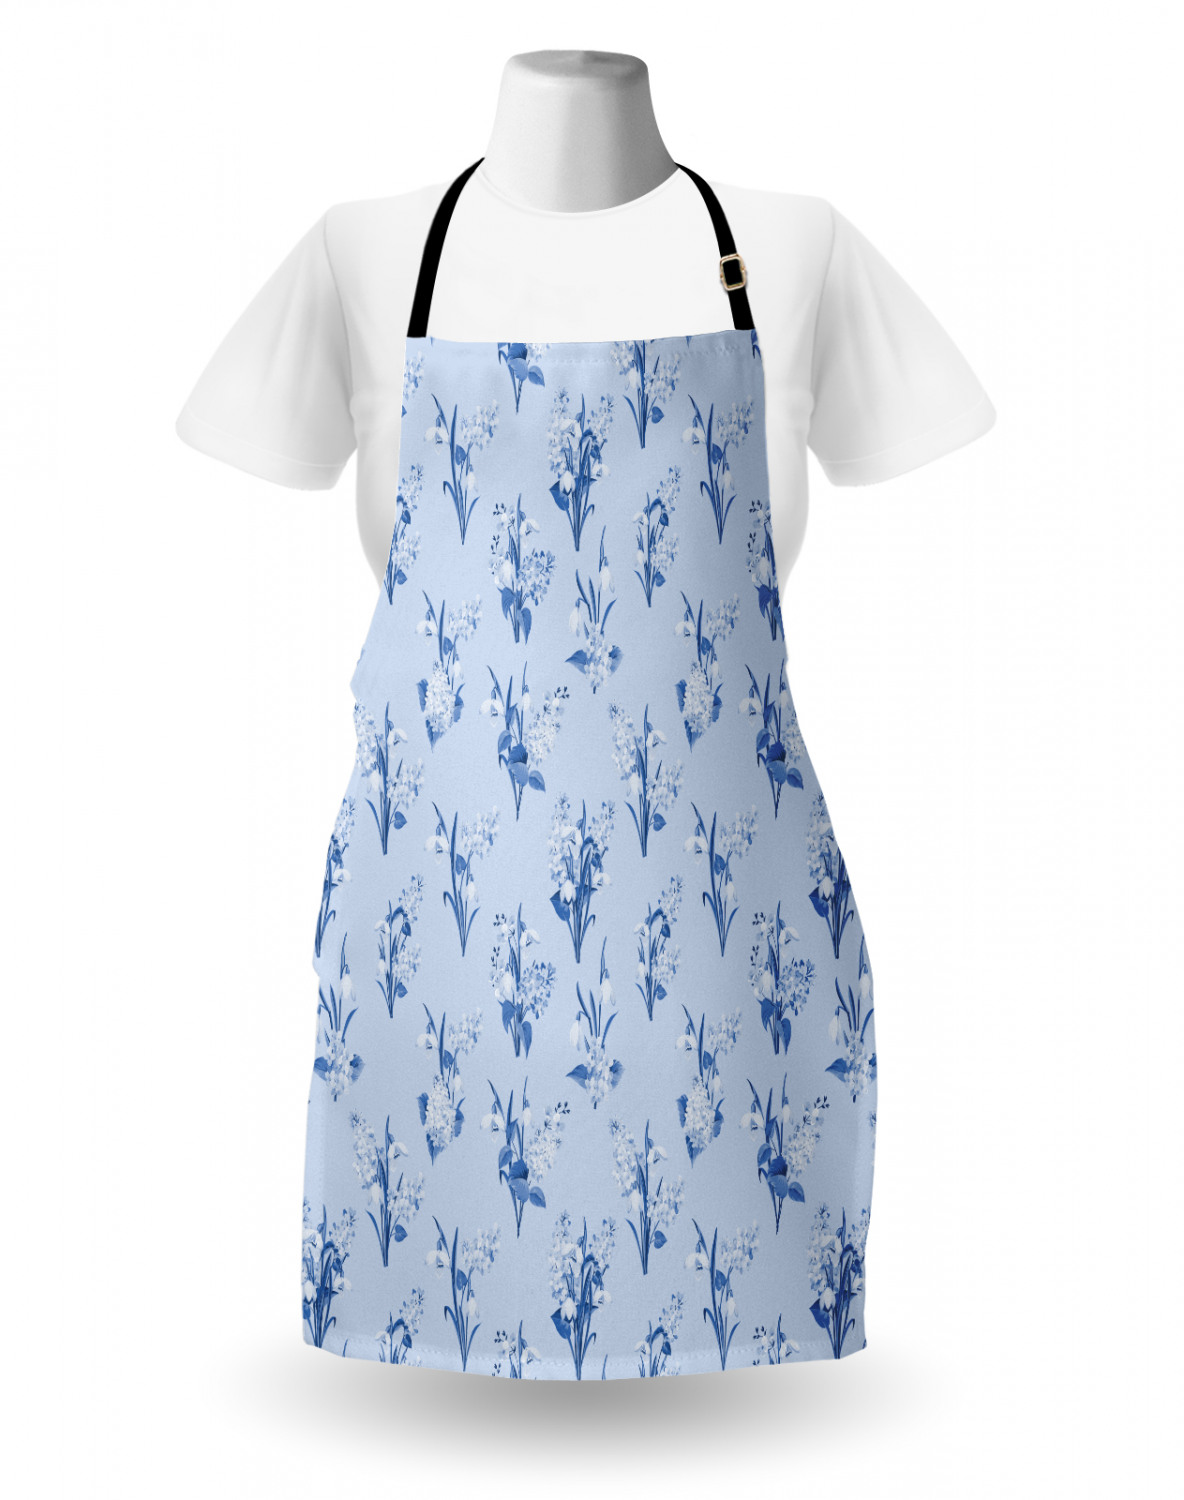 Ambesonne-Outdoor-Use-Apron-with-Adjustable-Neck-Strap-for-Gardening-and-Cooking miniatura 47